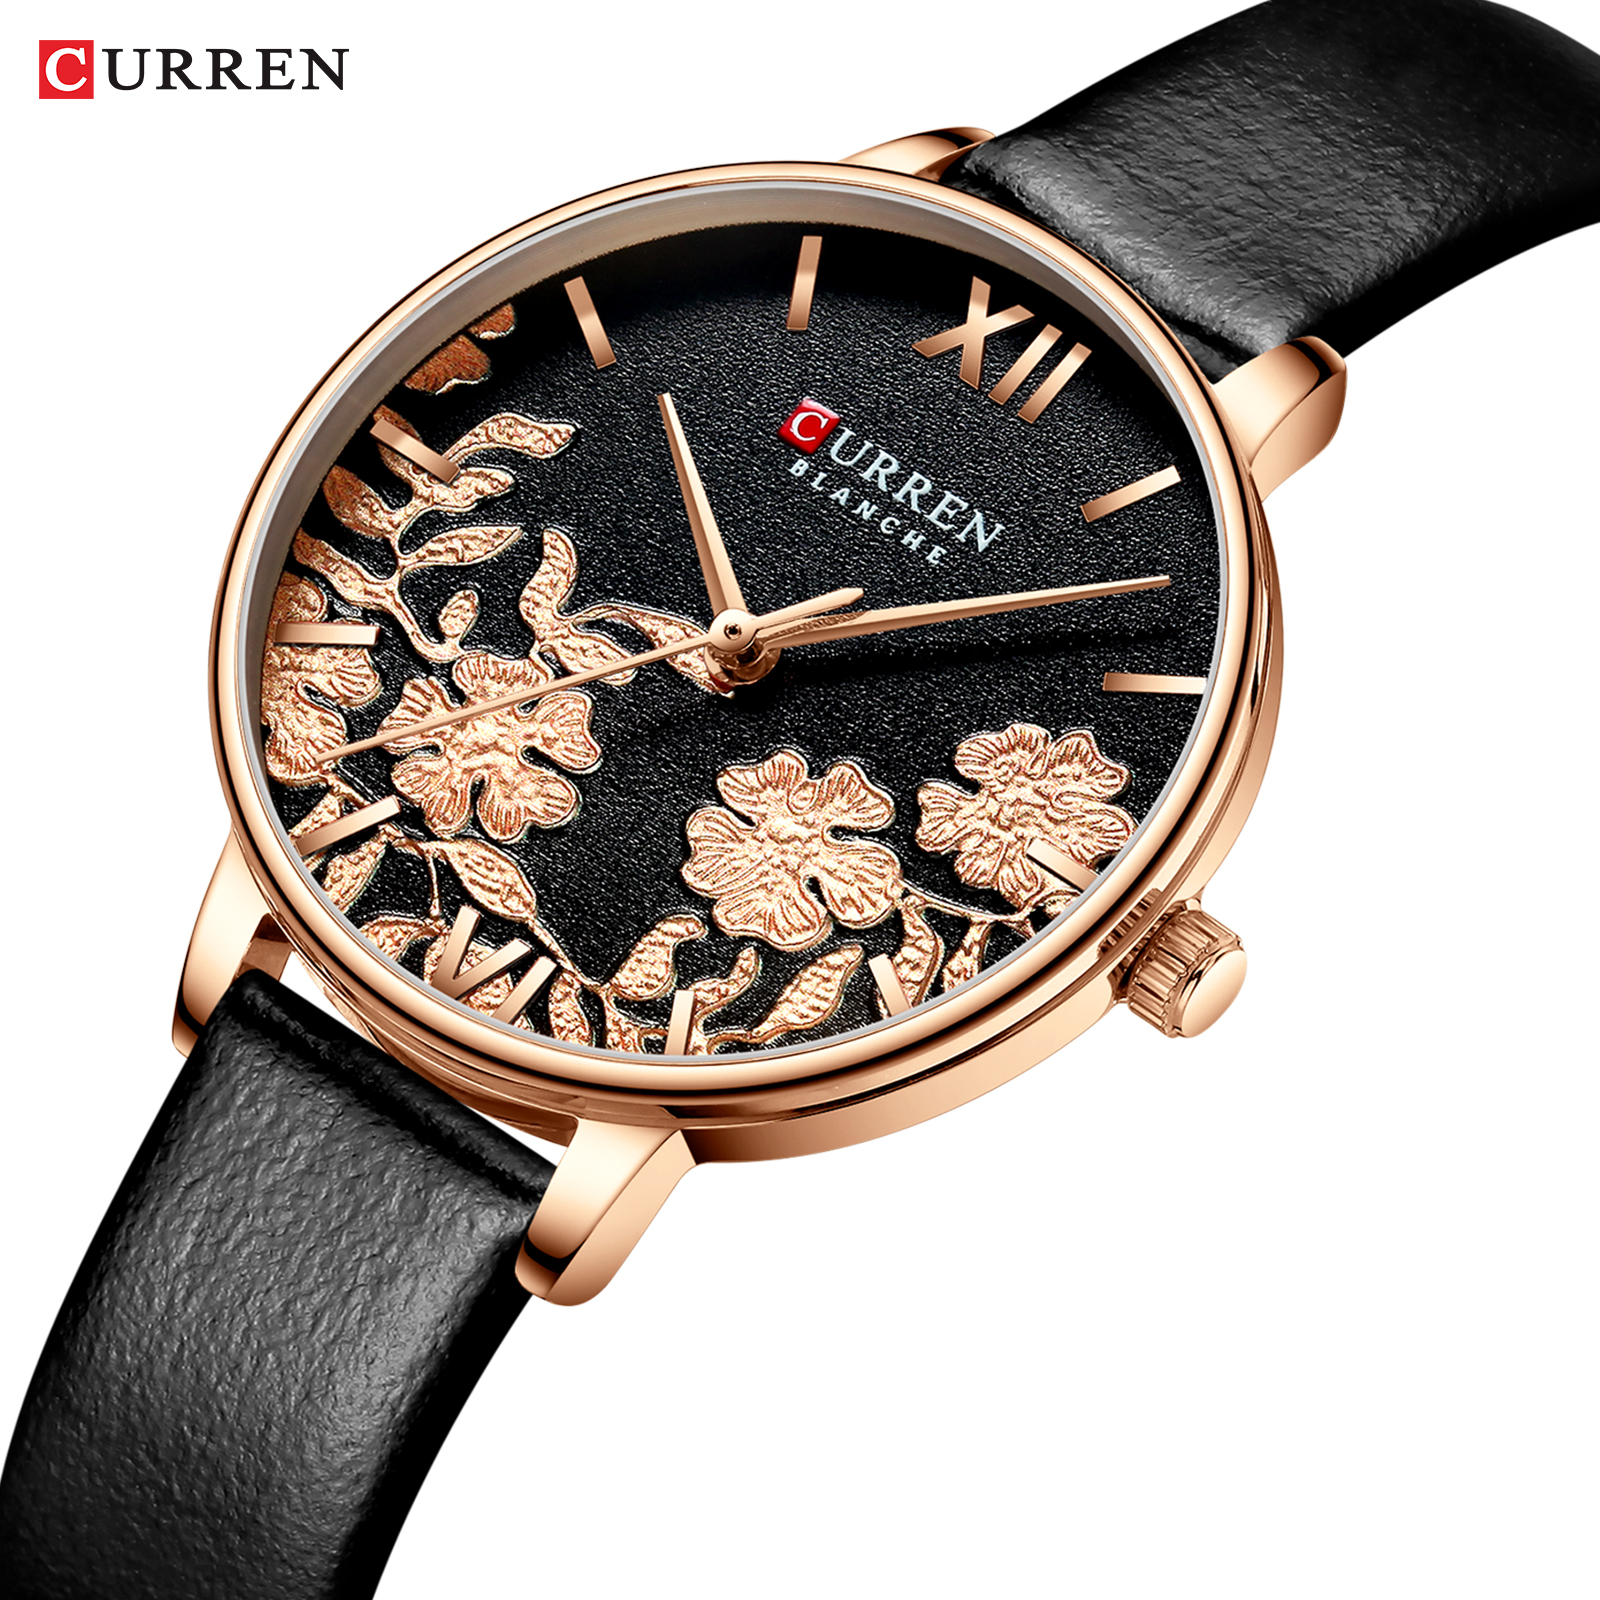 CURREN Leather Women Watches 2019 Beautiful Unique Design Dial Quartz Wristwatch Clock Female Fashion Dress Watch Montre femmeCURREN Leather Women Watches 2019 Beautiful Unique Design Dial Quartz Wristwatch Clock Female Fashion Dress Watch Montre femme